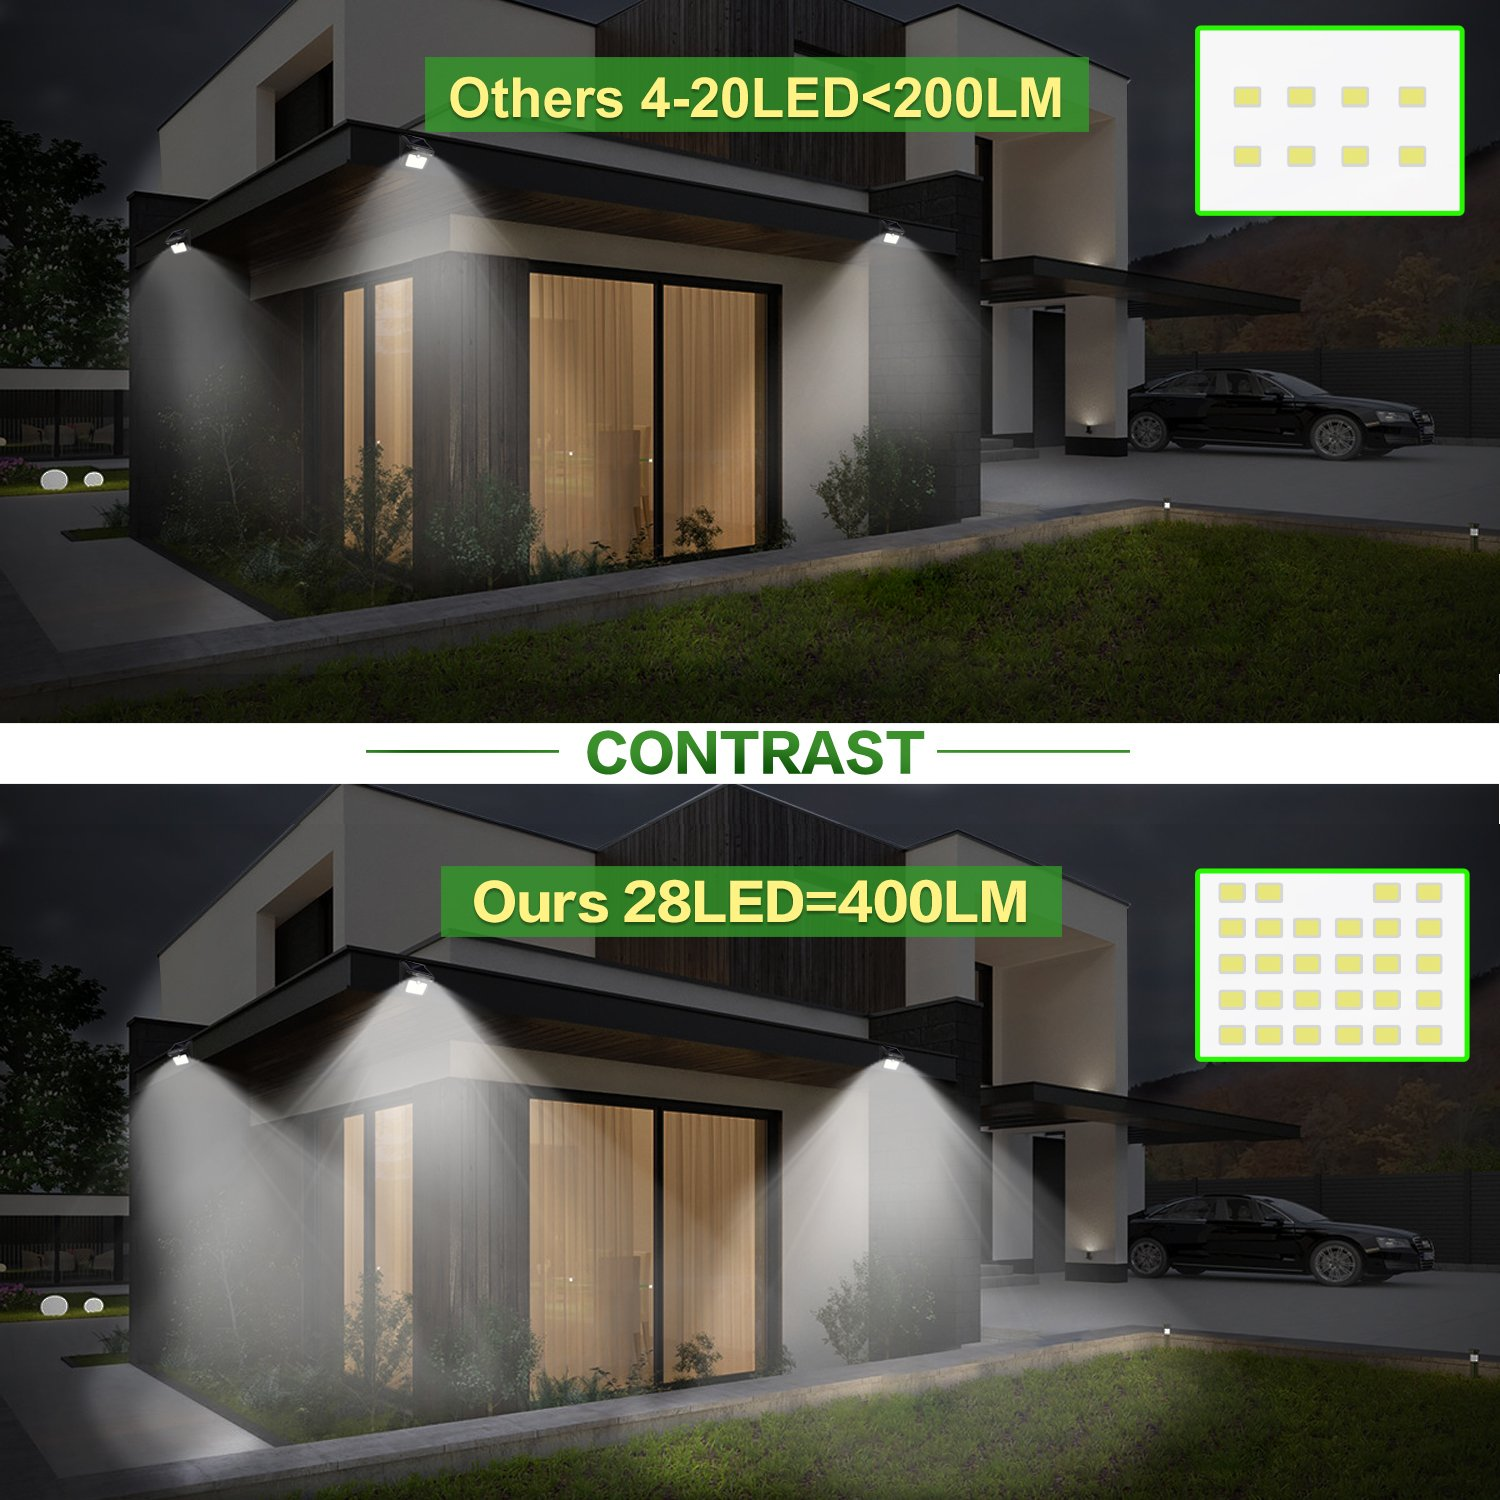 BAXIA Technology LED Solar Lights Outdoor, 400 Lumens Wireless Waterproof Motion Sensor Security Lights for Front Door,Outside Wall,Back Yard,Garage,Garden,Fence,Driveway [Upgraded 28LED 2 Packs] by BAXIA TECHNOLOGY (Image #7)